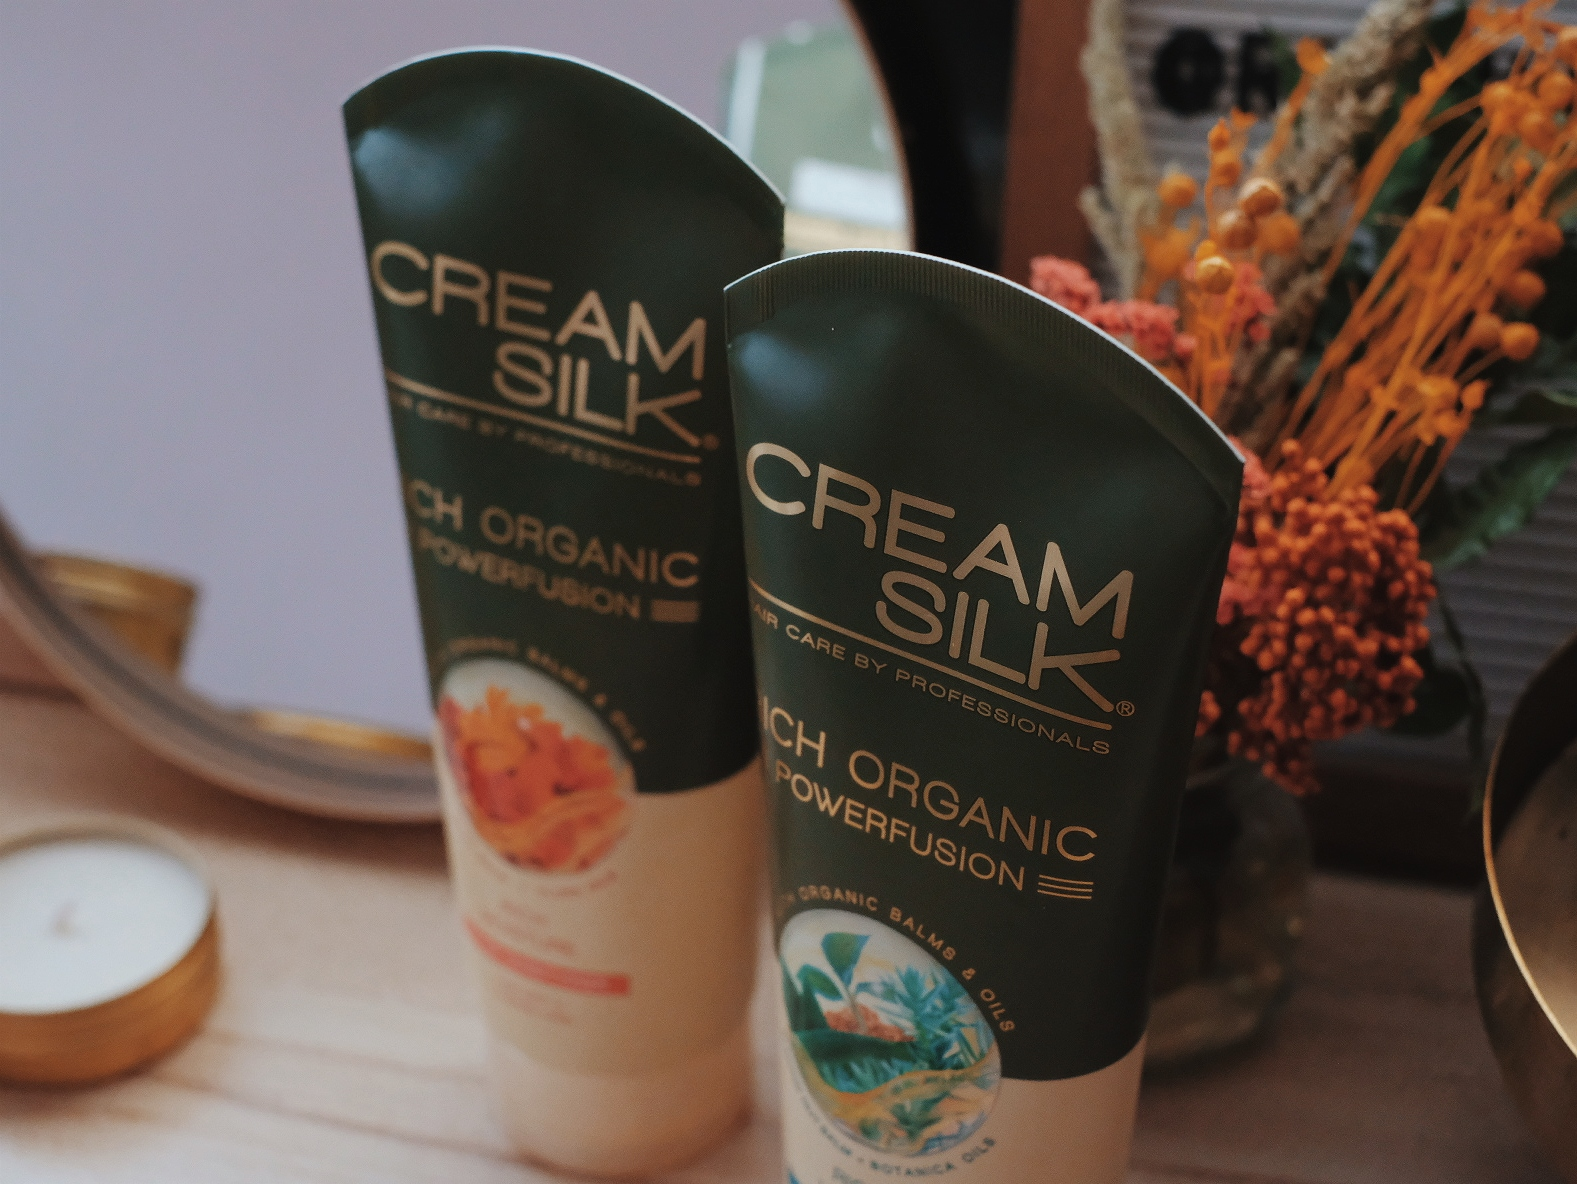 The New Cream Silk Rich Organic Powerfusion Ultra Conditioner